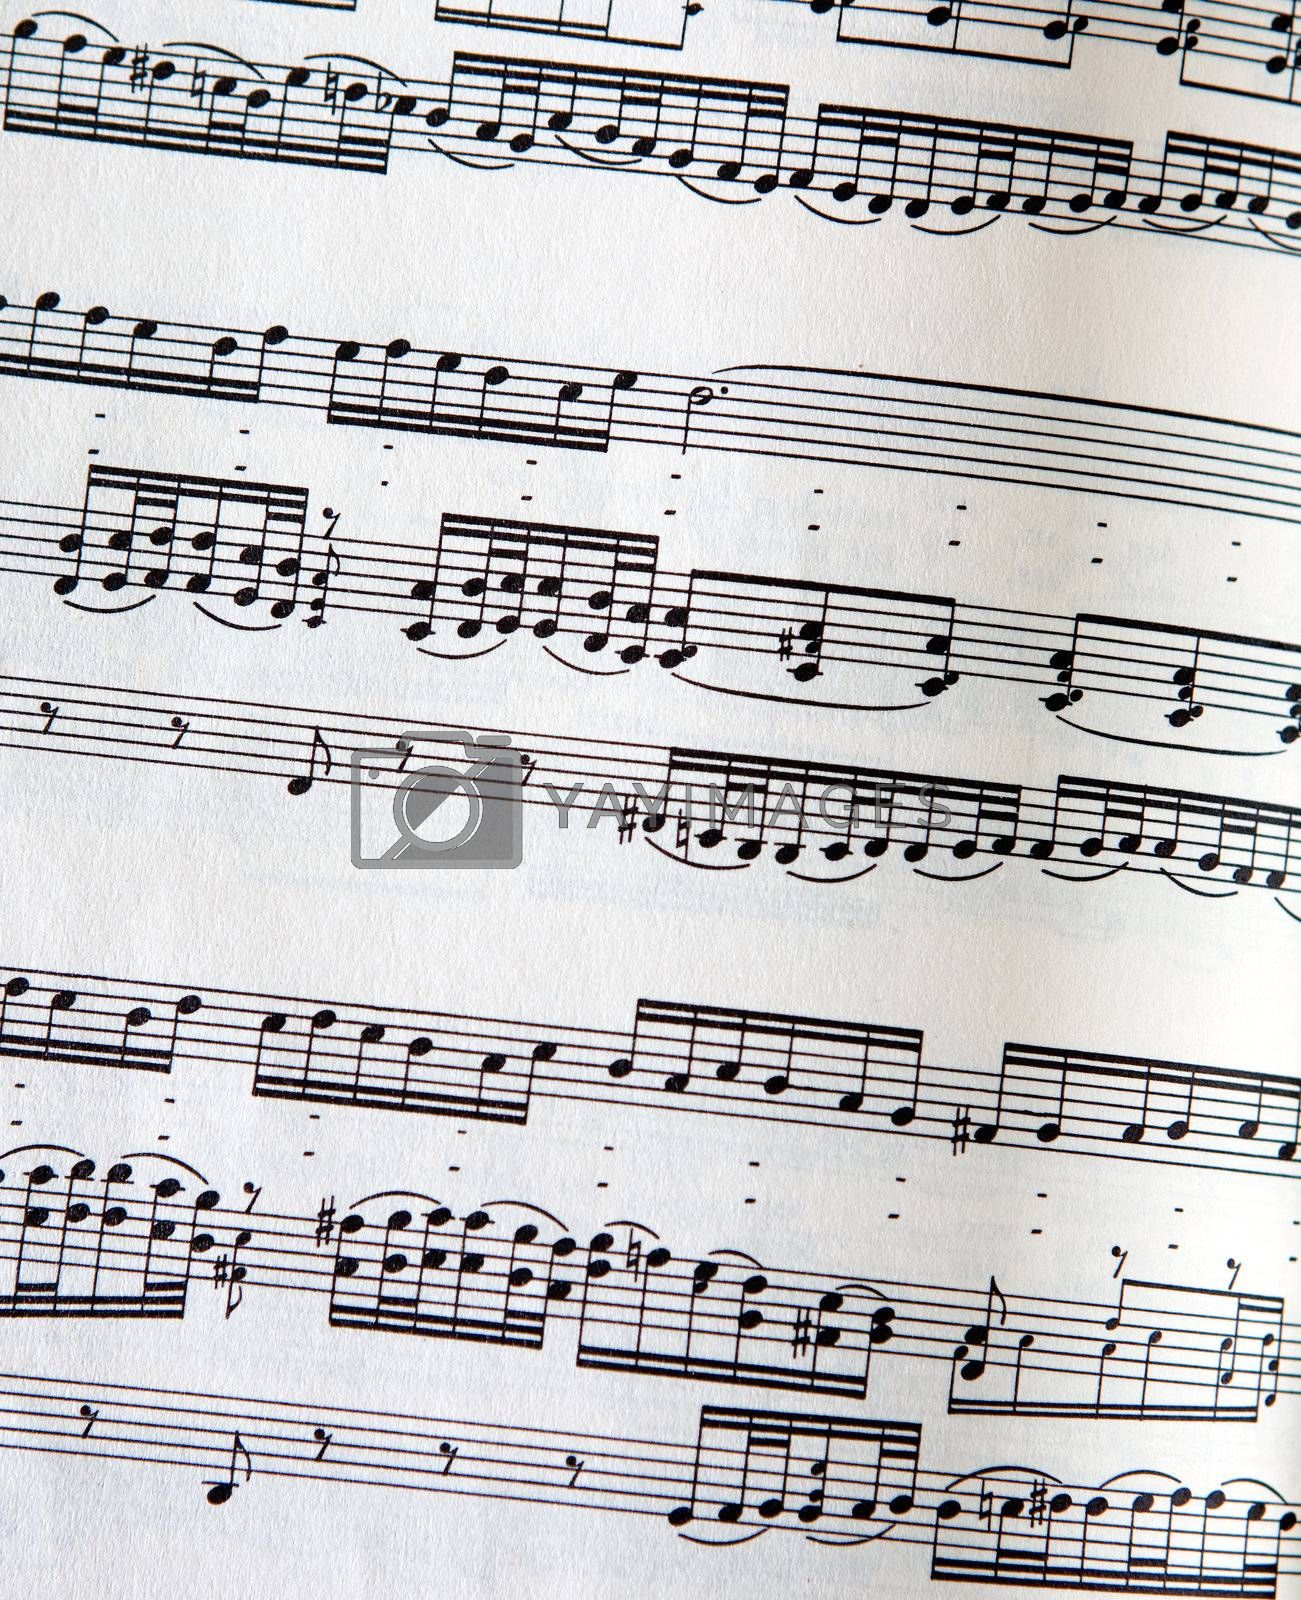 A page of music with detailed paper texture